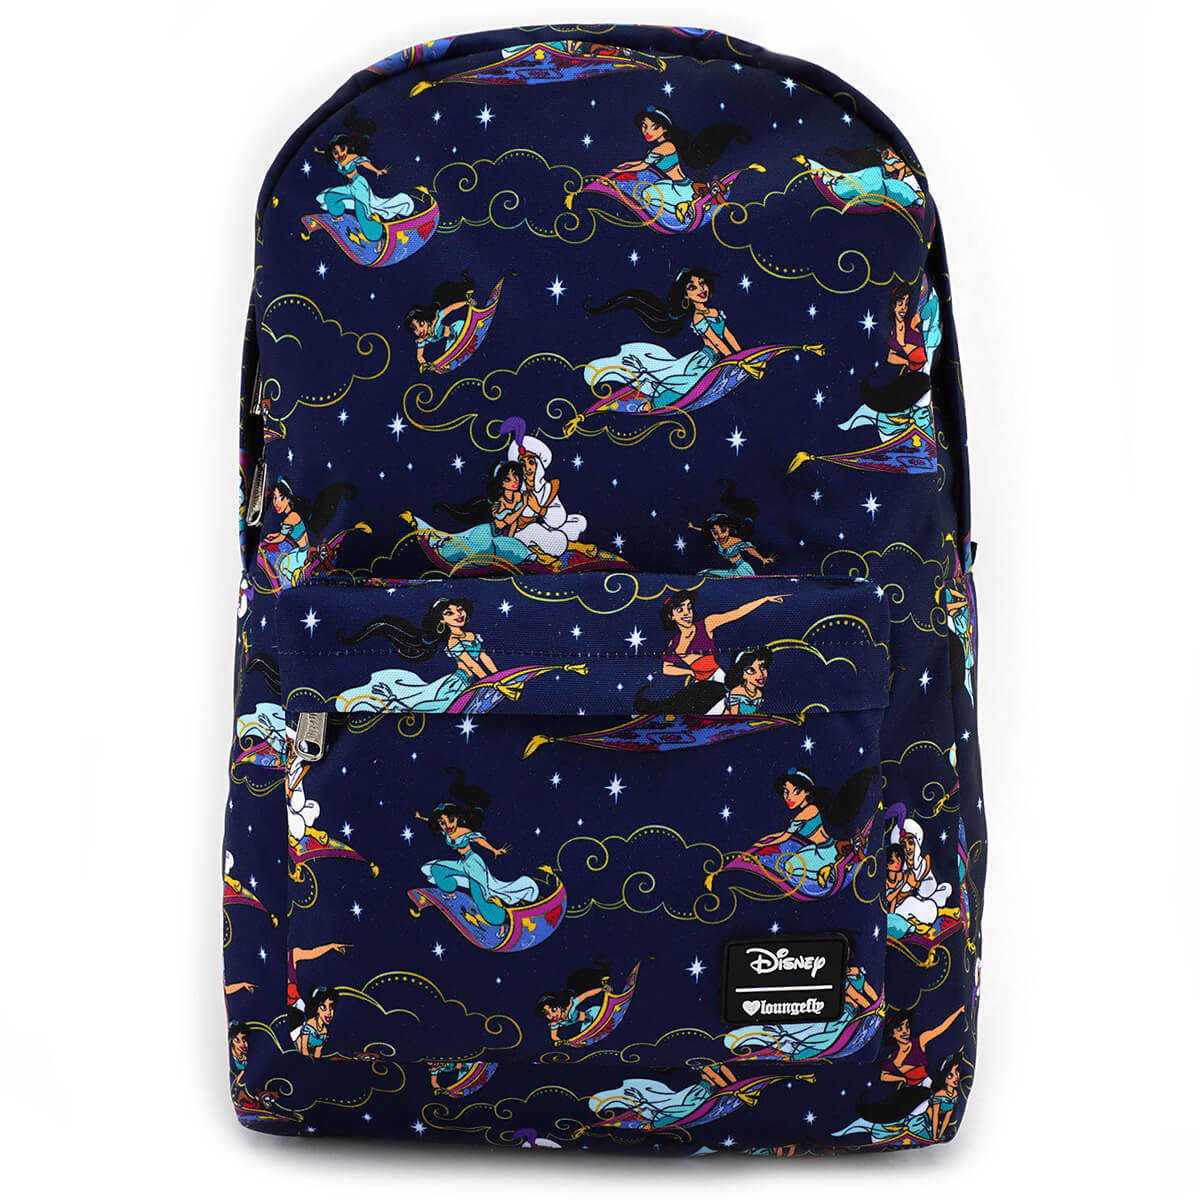 Sac A Dos Disney Aladdin Tapis Volant Loungefly Pop In A Box France